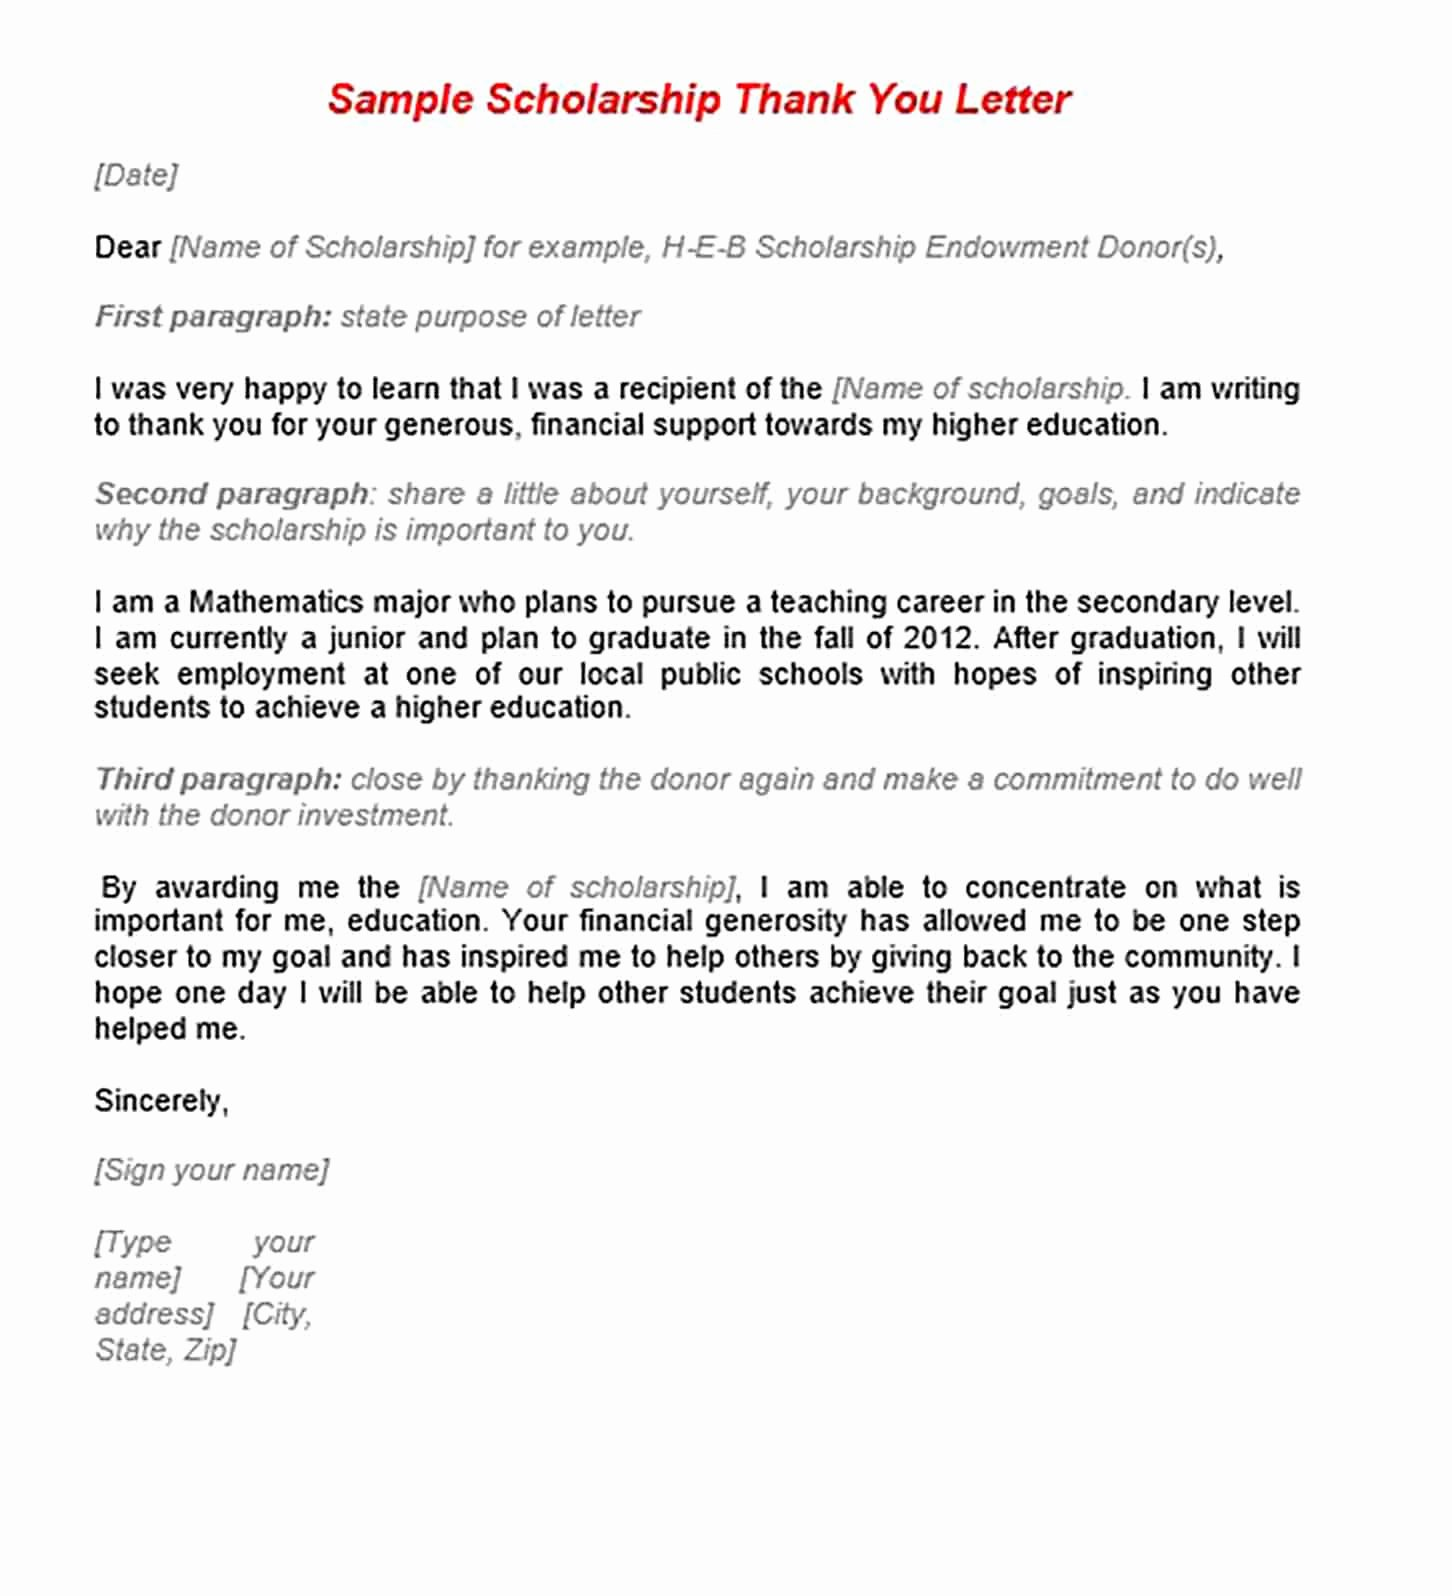 Scholarship Thank You Letter Examples Fresh 11 Scholarship Thank You Letter Sample for Doc Pdf